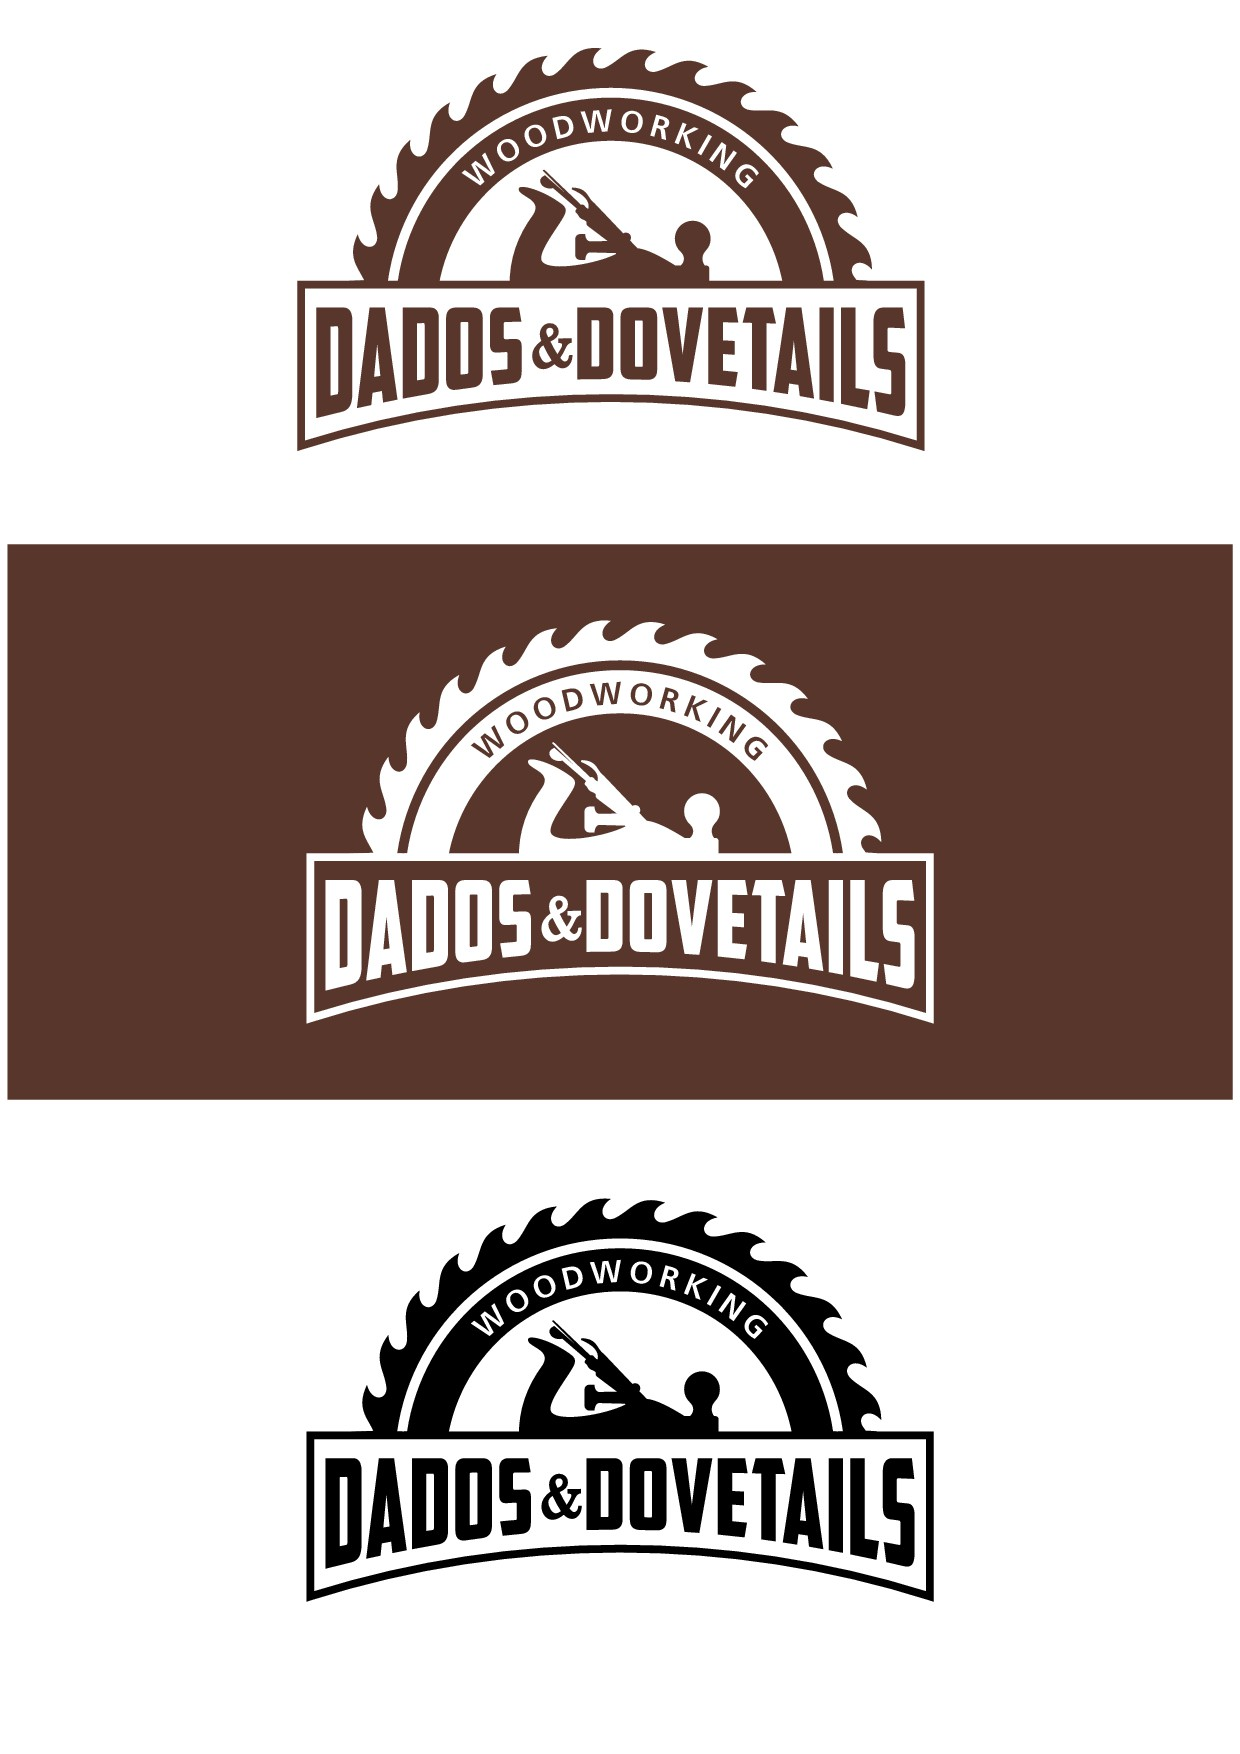 Create an eye catching woodworking logo for Dados & Dovetails